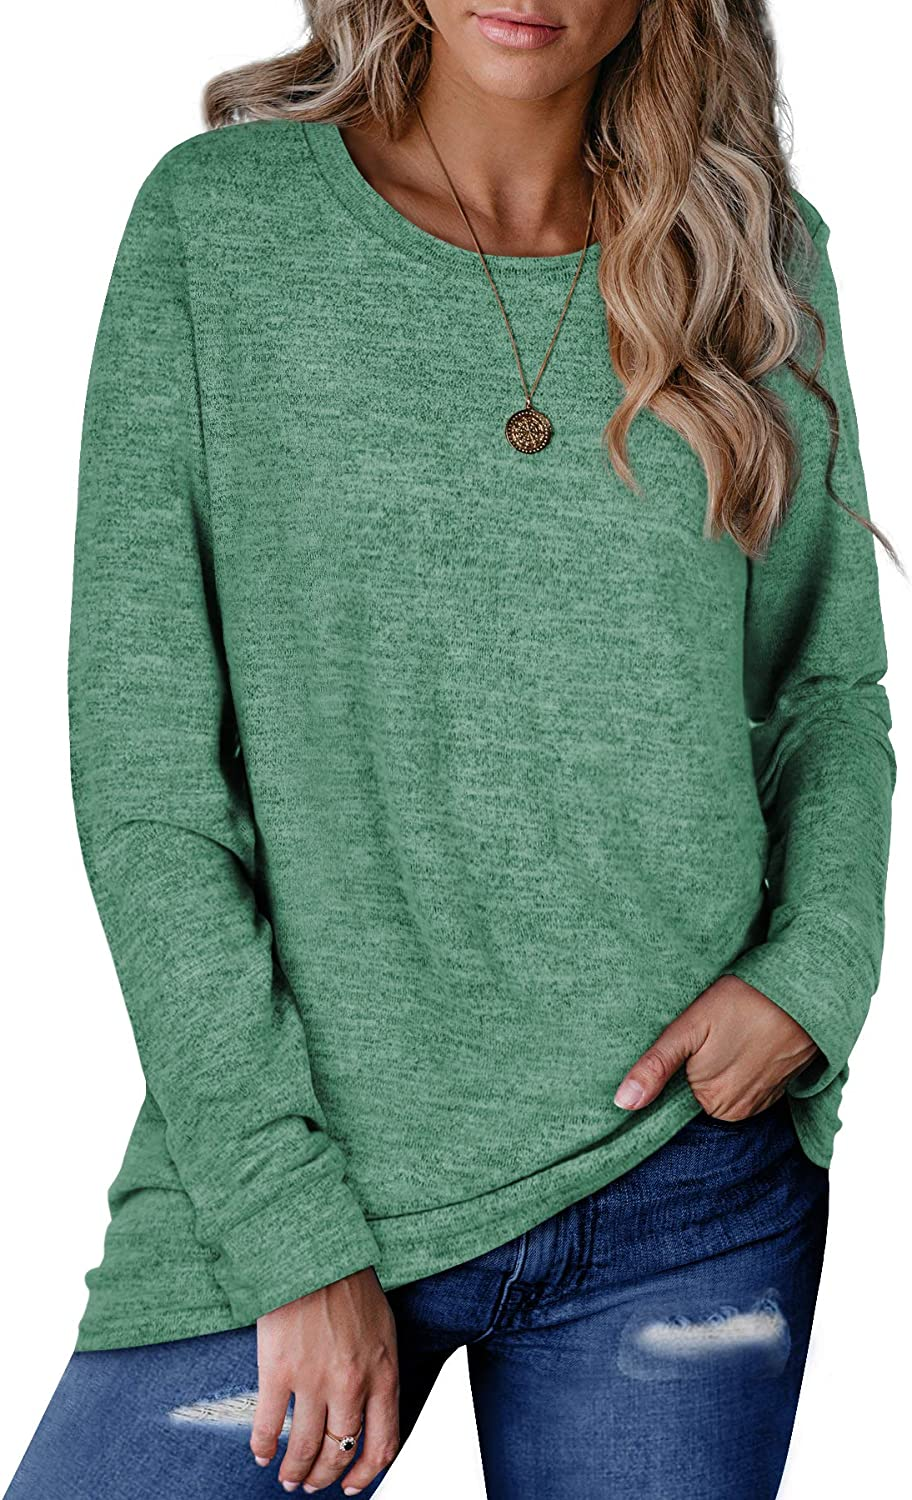 WEESO Sweaters for Women Long Sleeve Color Block Casual Round Neck Cute Tunic Tops